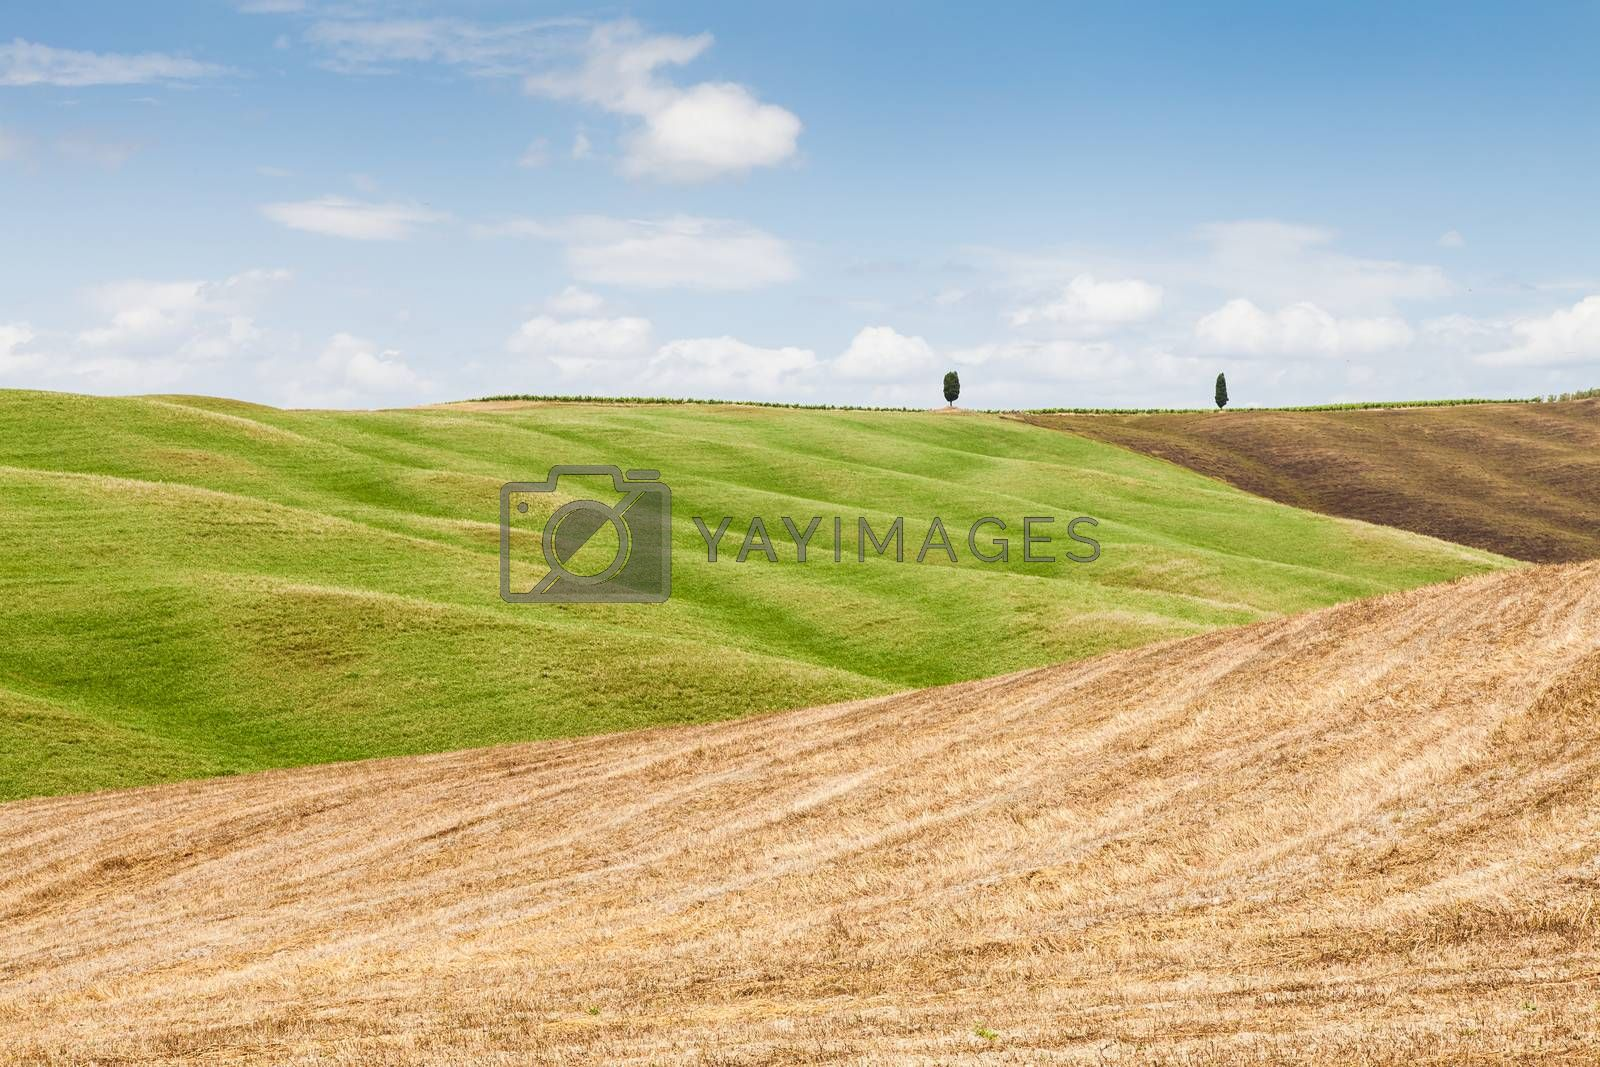 Tuscany agriculture by Perseomedusa